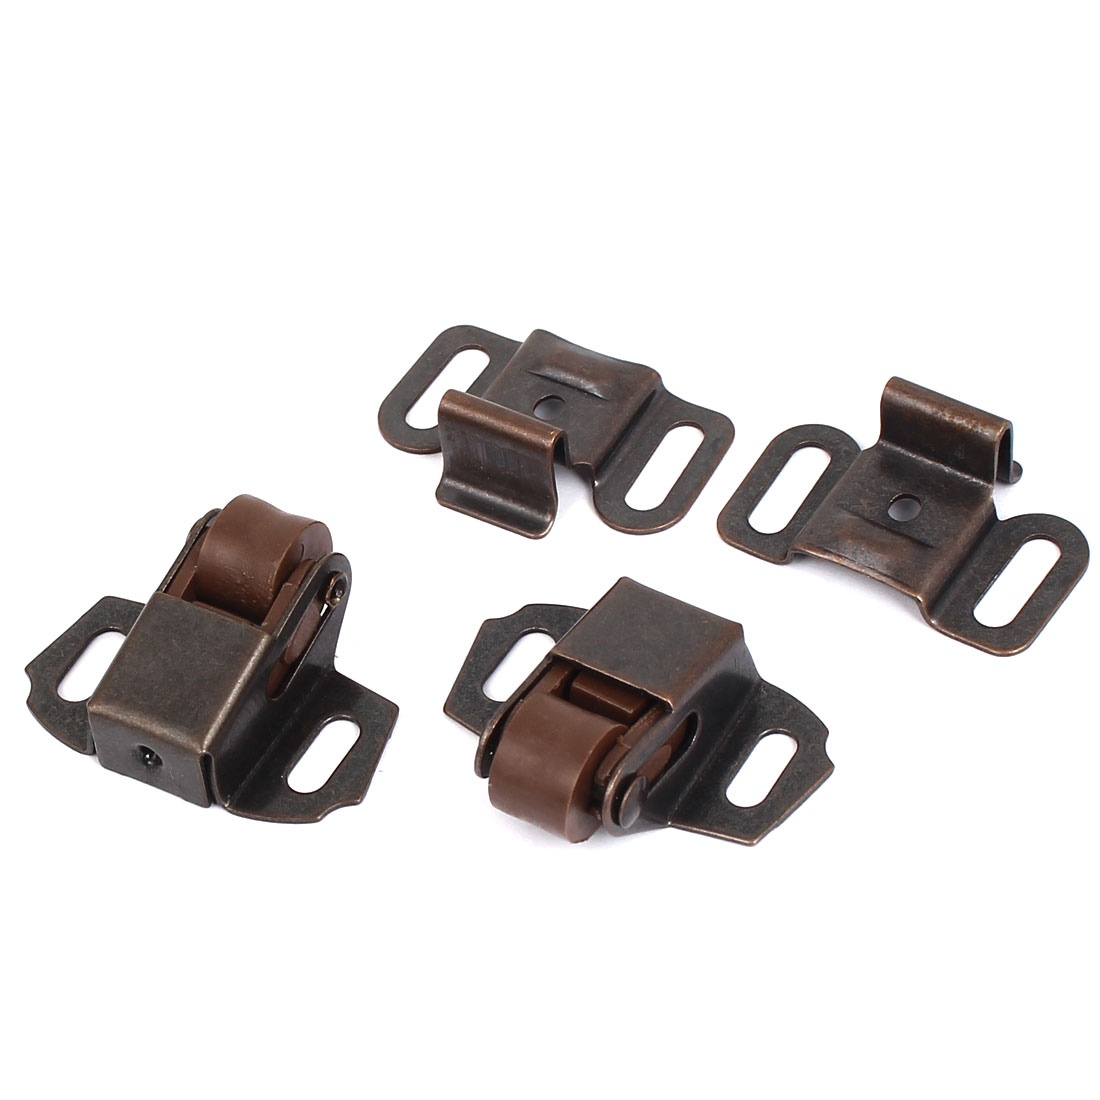 Cupboard Wardrobe Door Metal Single Roller Catch Latch Copper Tone 2pcs